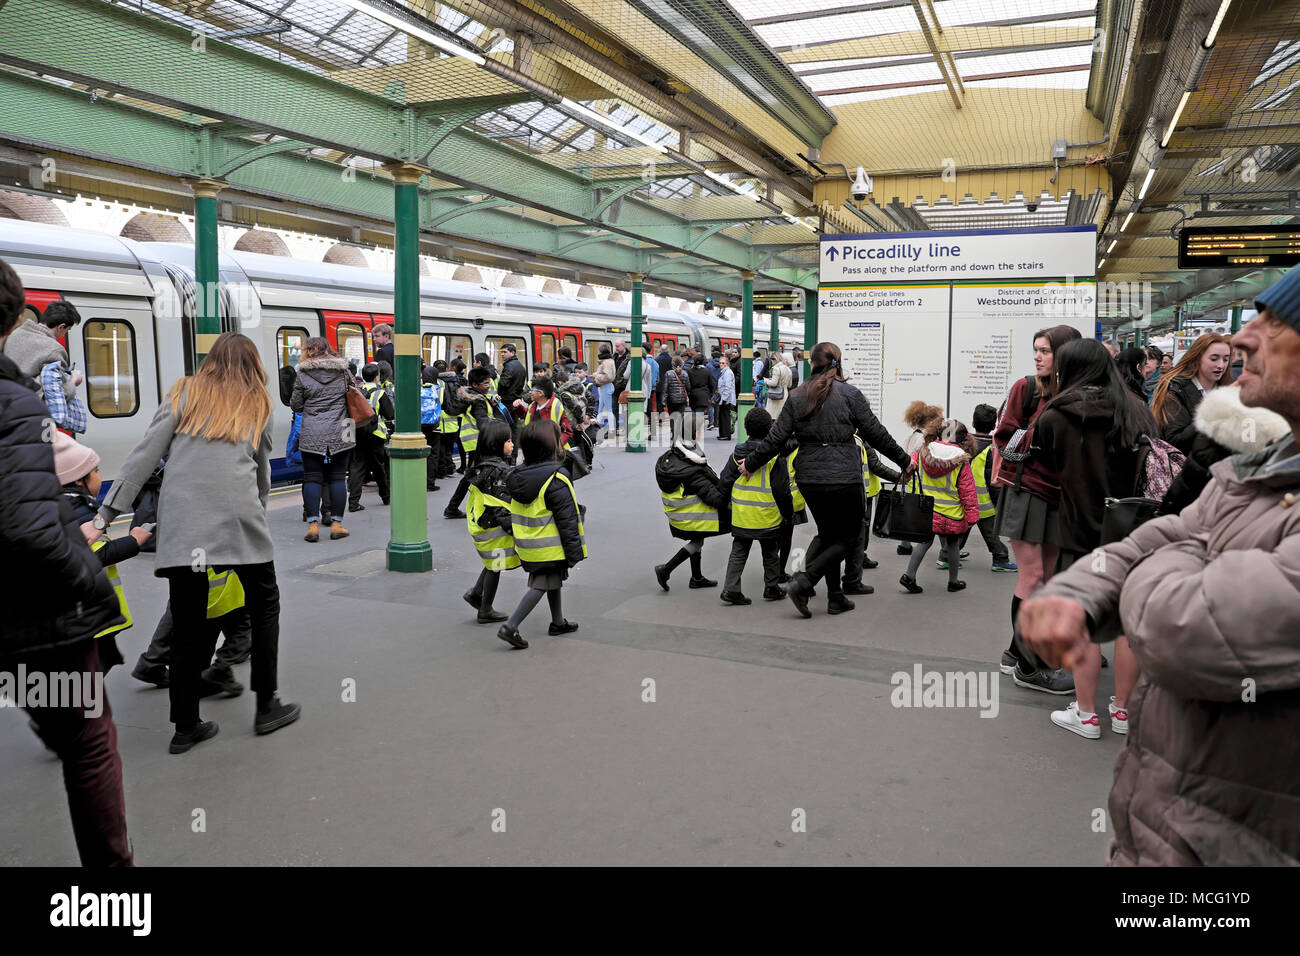 A group of schoolchildren in fluorescent yellow jackets being led by teachers to train on the Piccadilly Line London underground station KATHY DEWITT - Stock Image